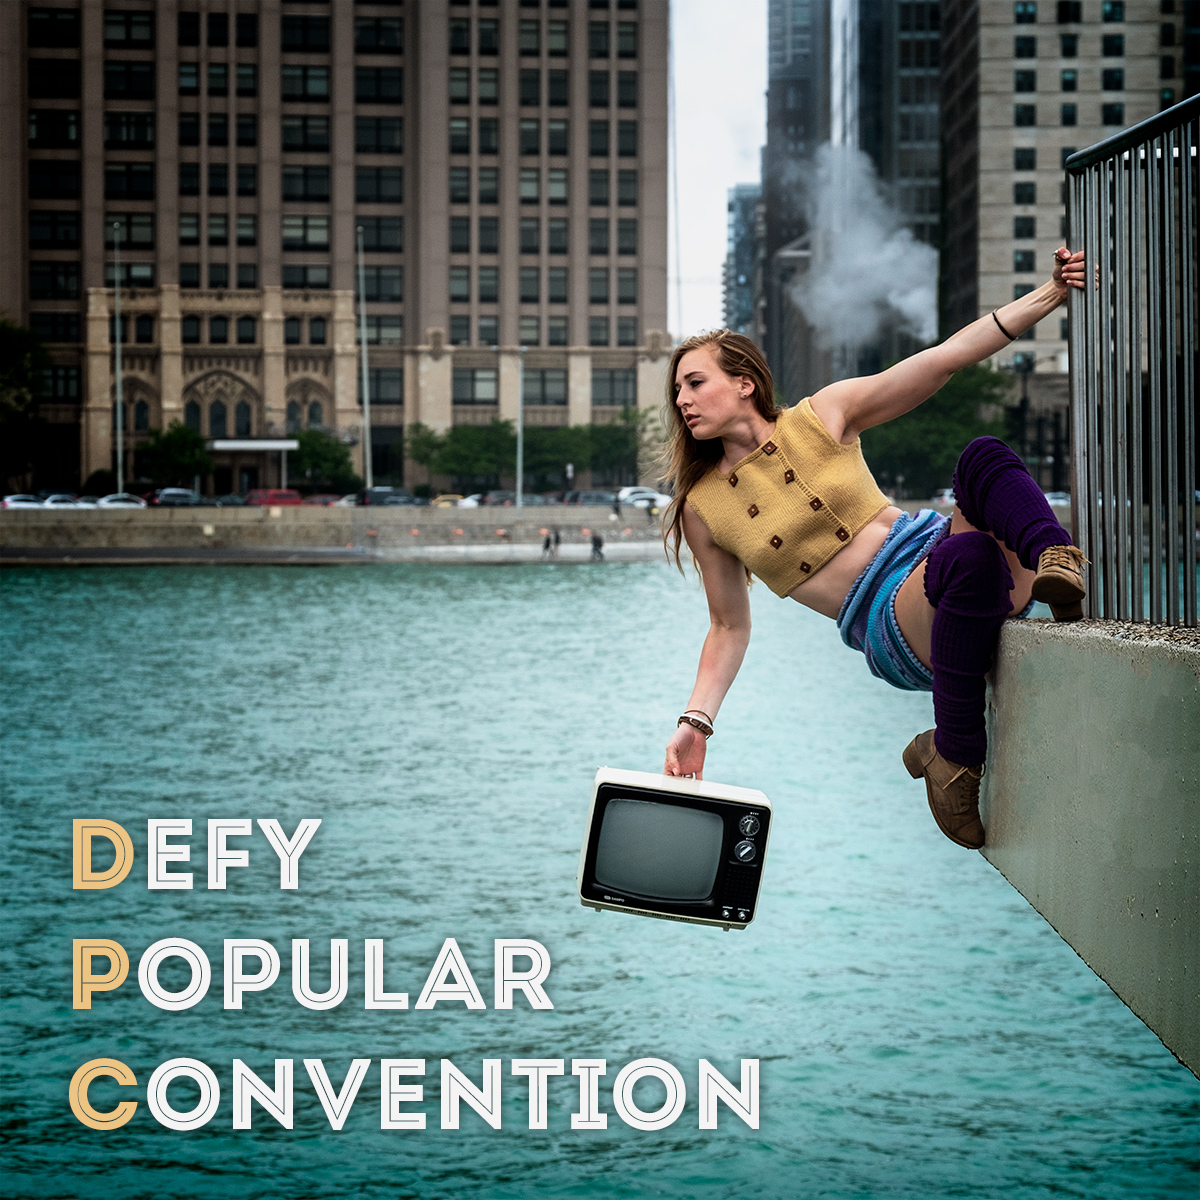 Defy Popular Convention